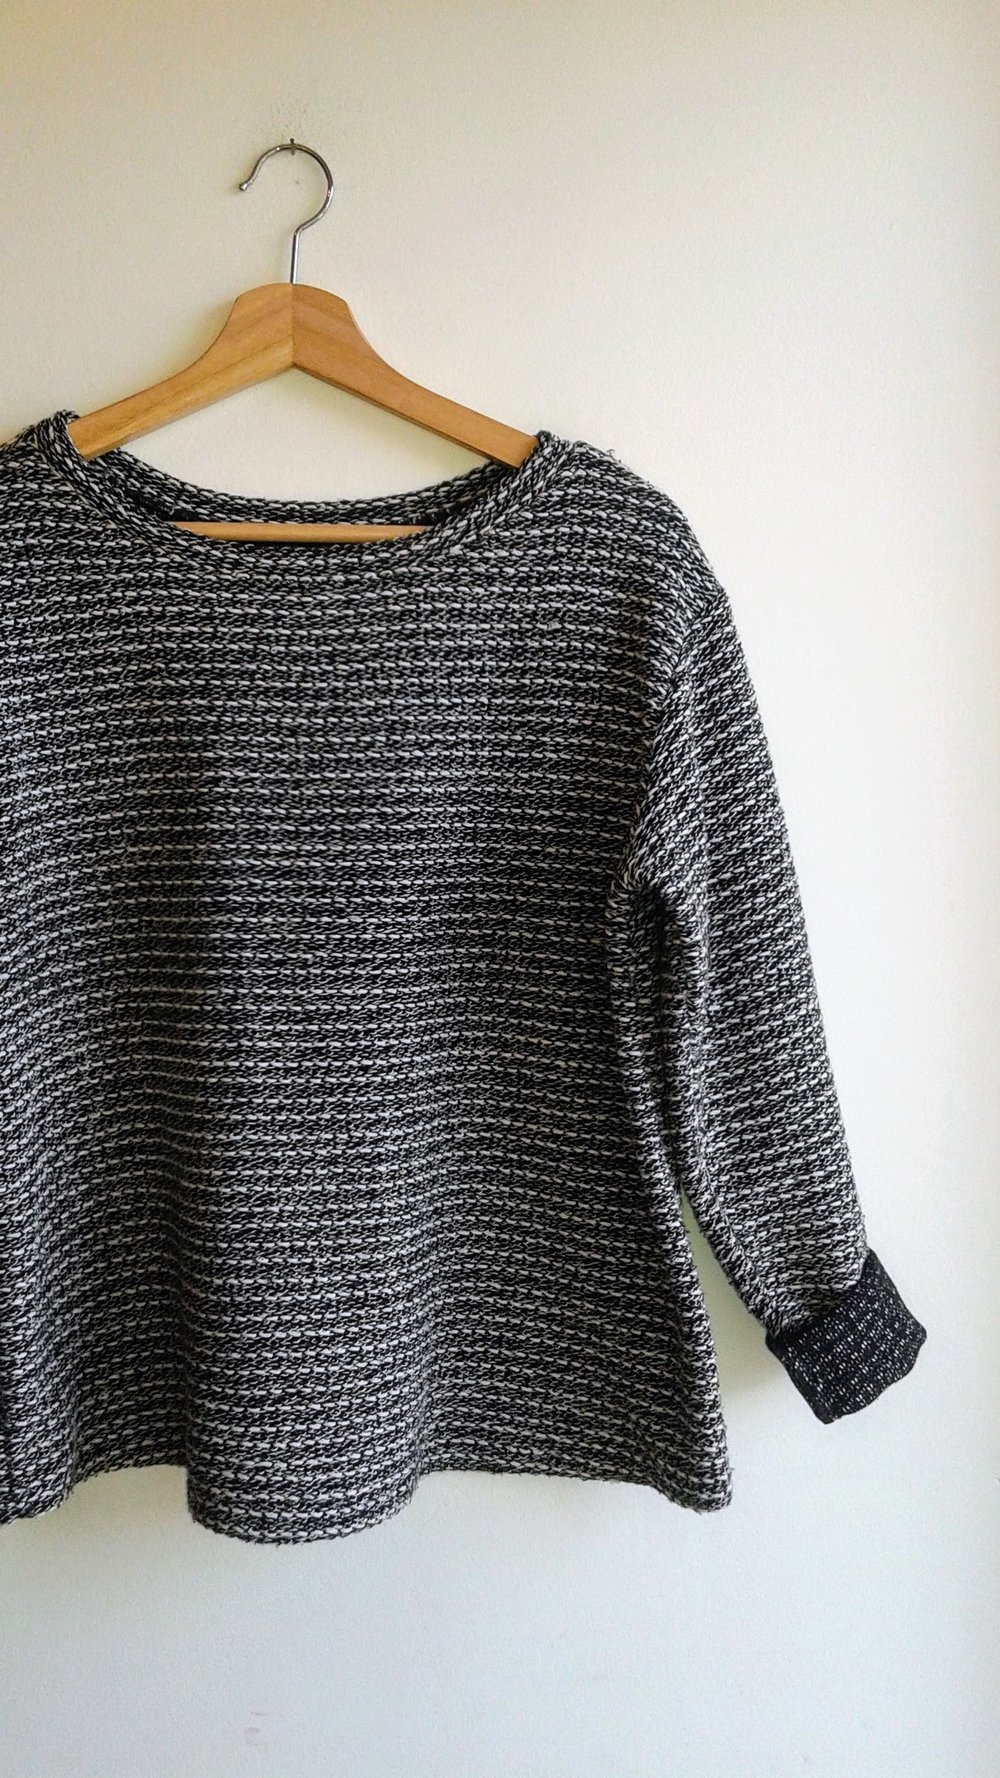 Workhall top; Size L, $40